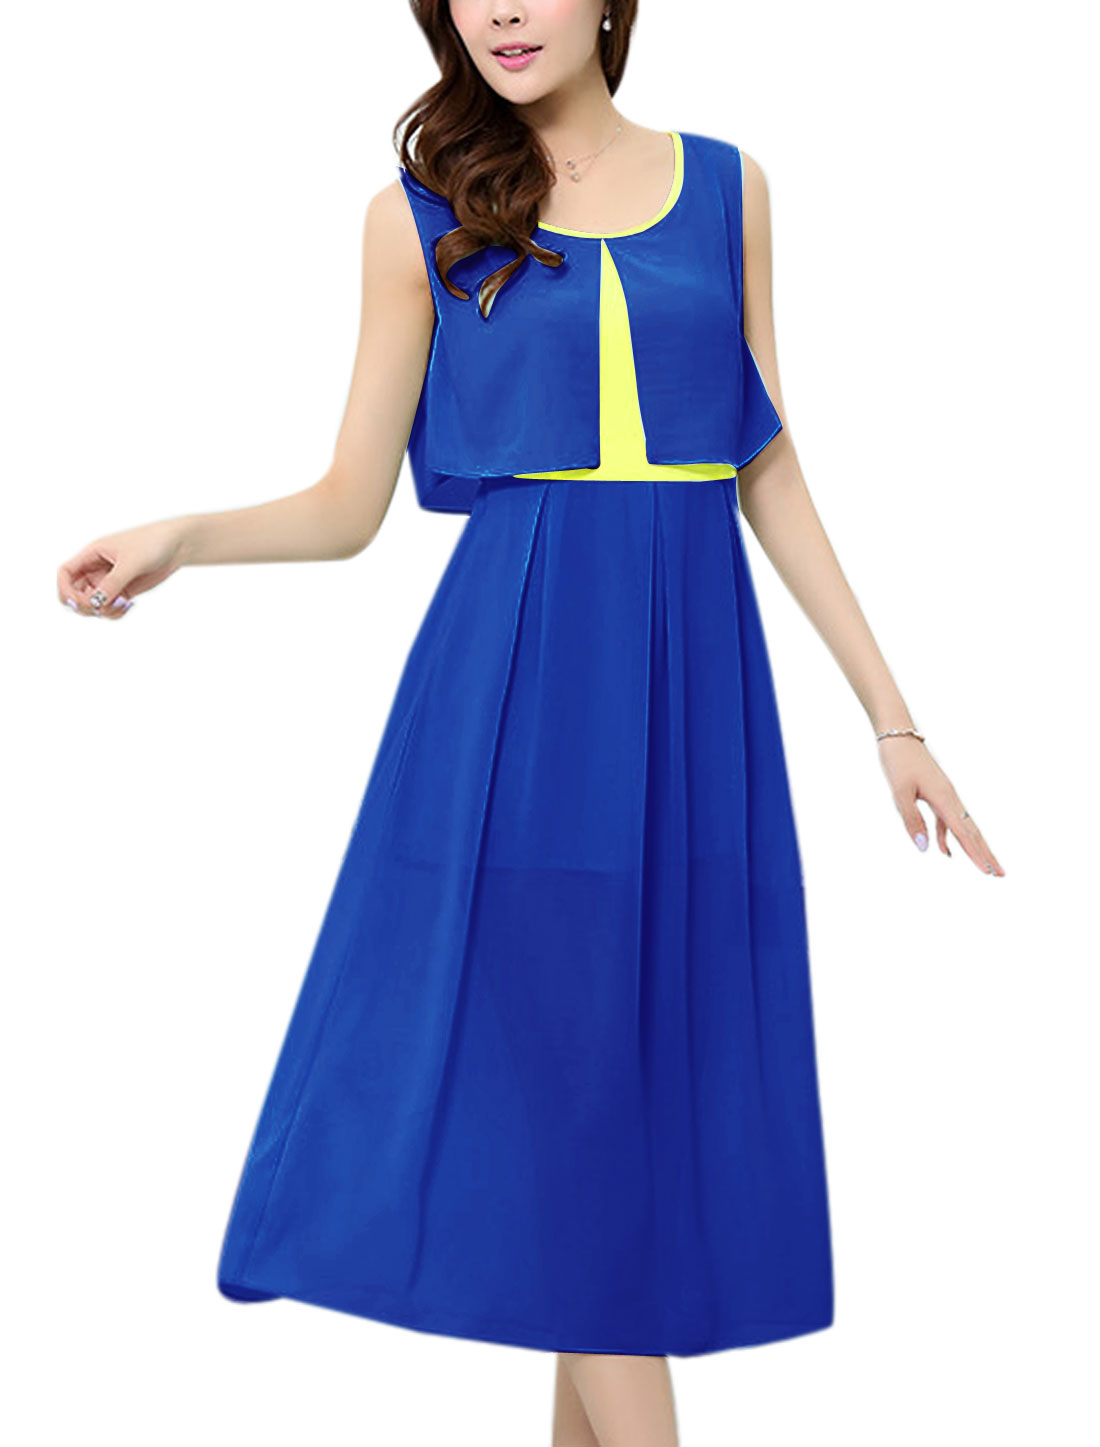 Lady Round Neck Fake Two Piece Design Mid-Calf A-Line Dress Blue M